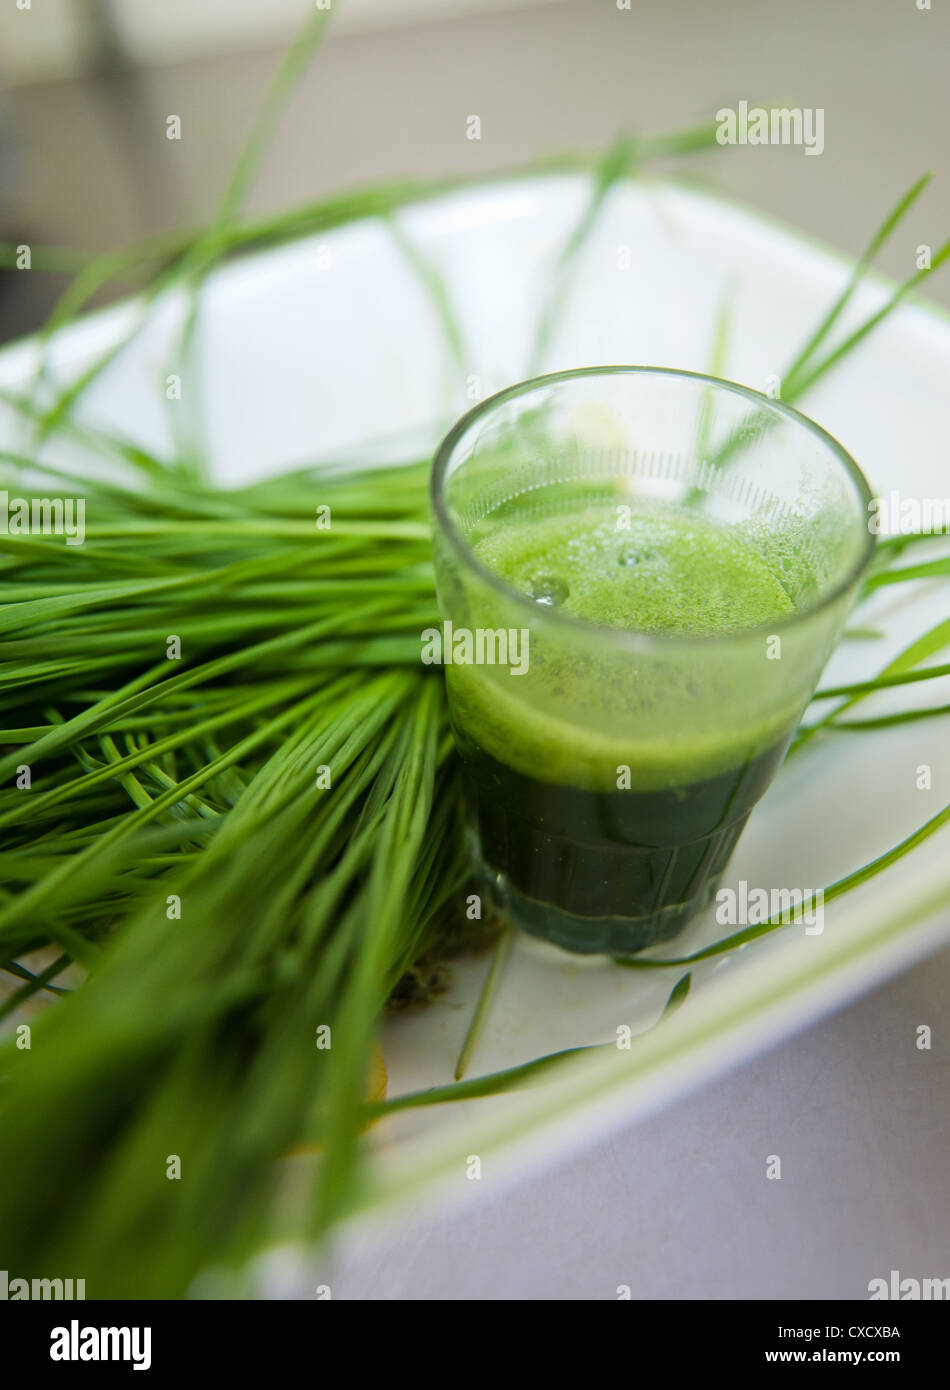 Wheat Grass sprouts and Wheatgrass drink  - Stock Image